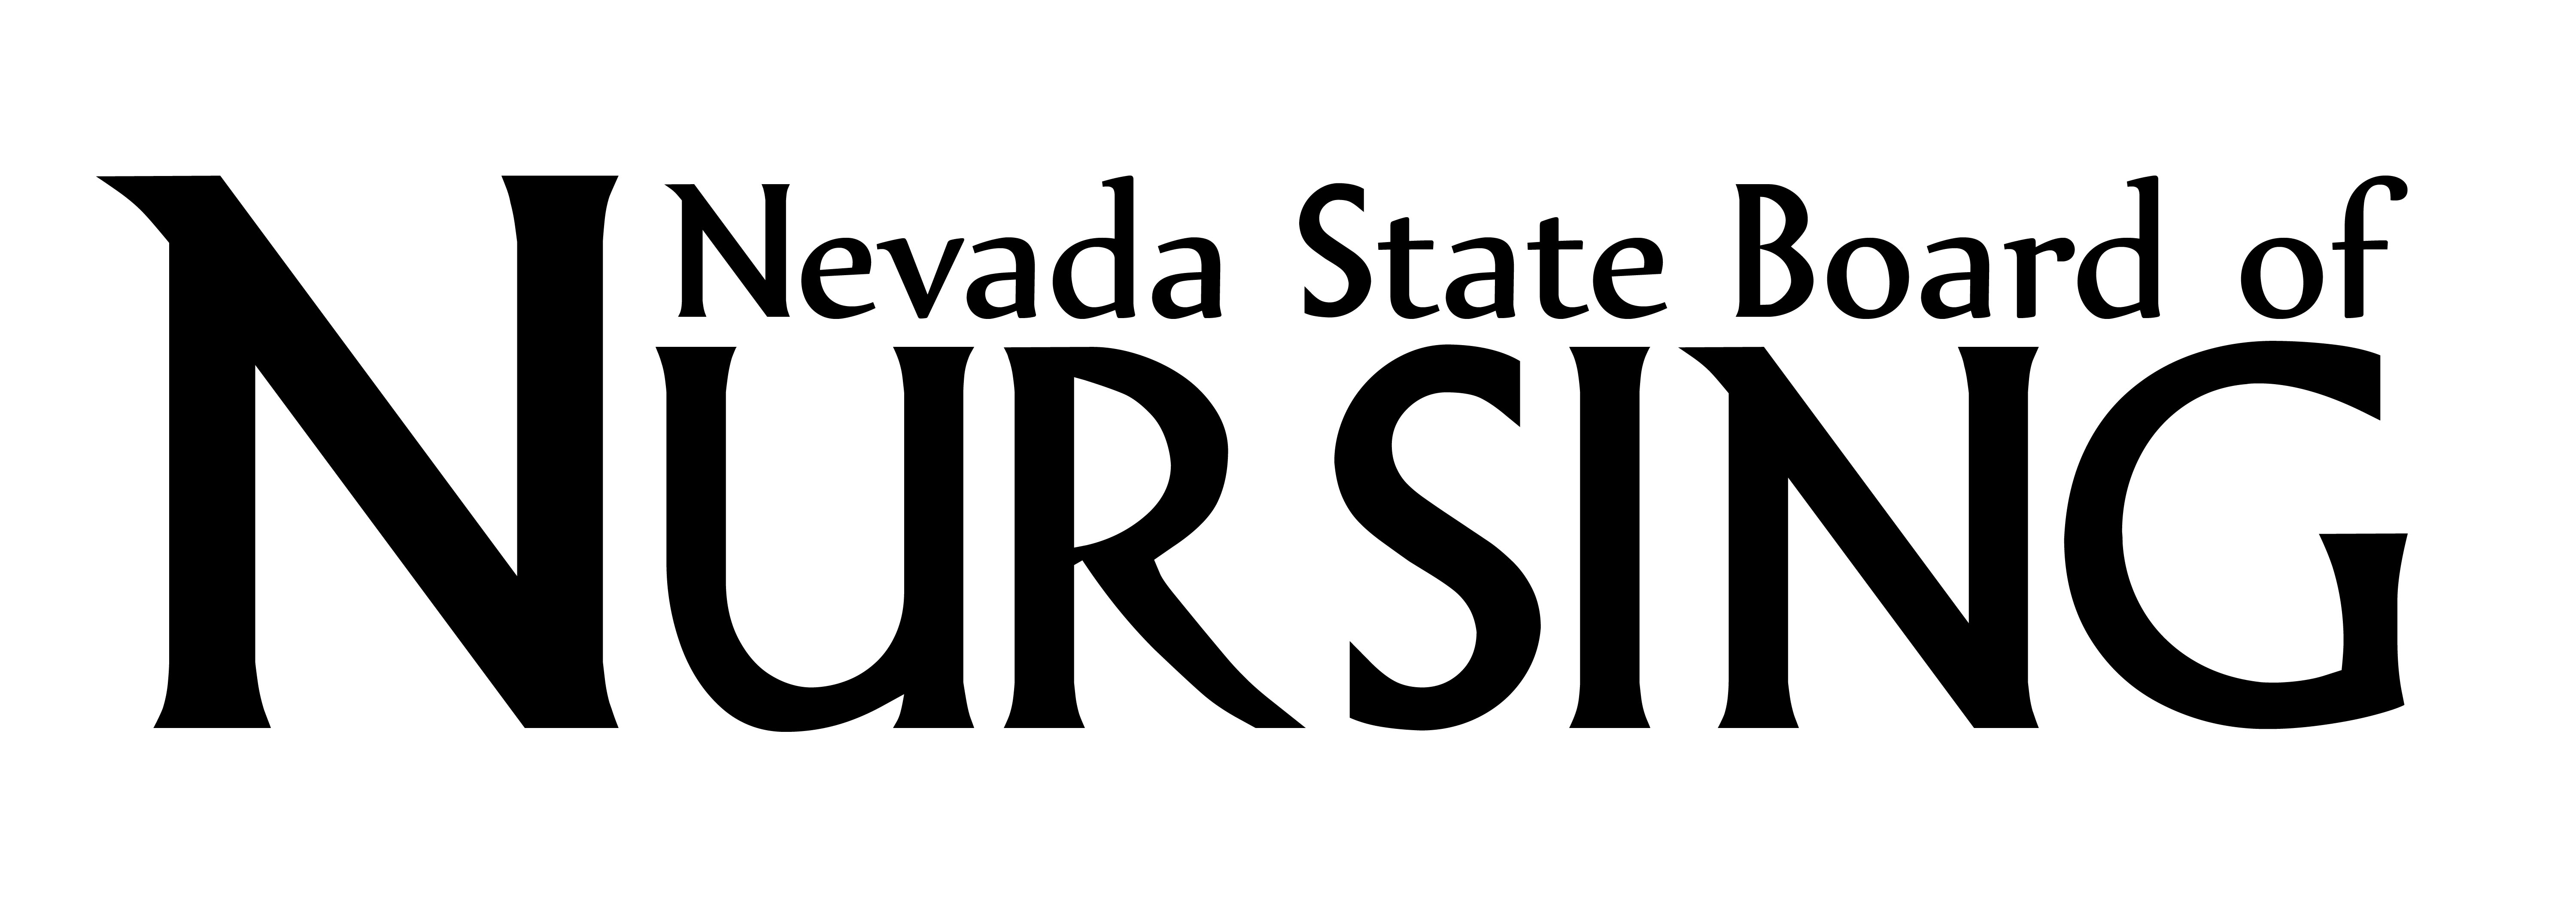 Nevada State Board Of Nursing Protecting The Public S Health Safety And Welfare Through Effective Nursing Regulation